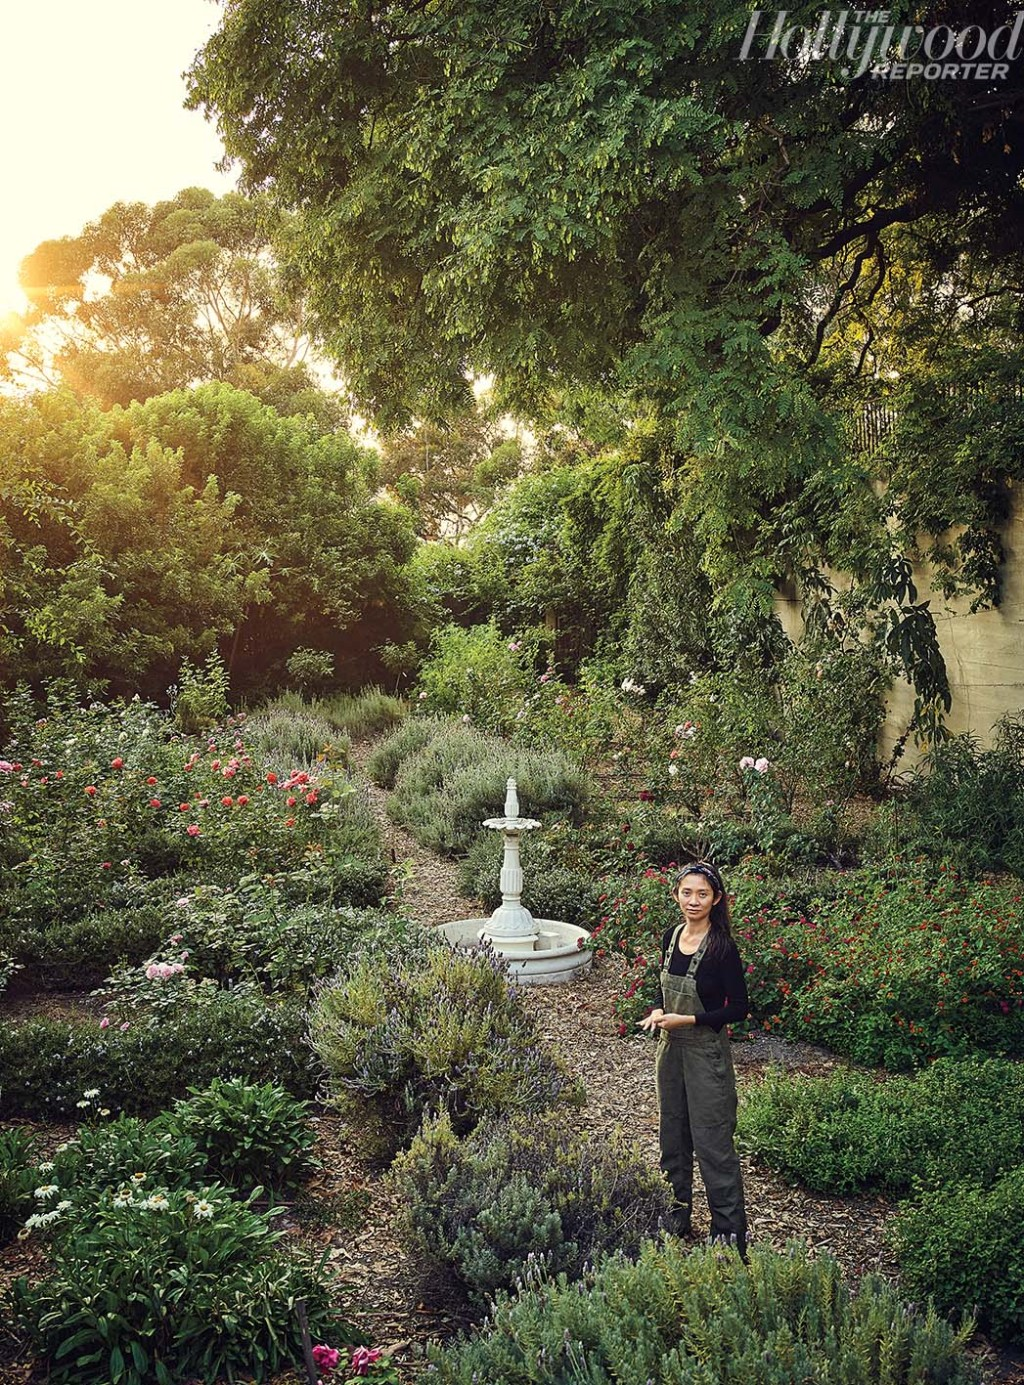 """I find the industry quite noisy,"" says Zhao of her decision to live in Ojai, California, rather than L.A."